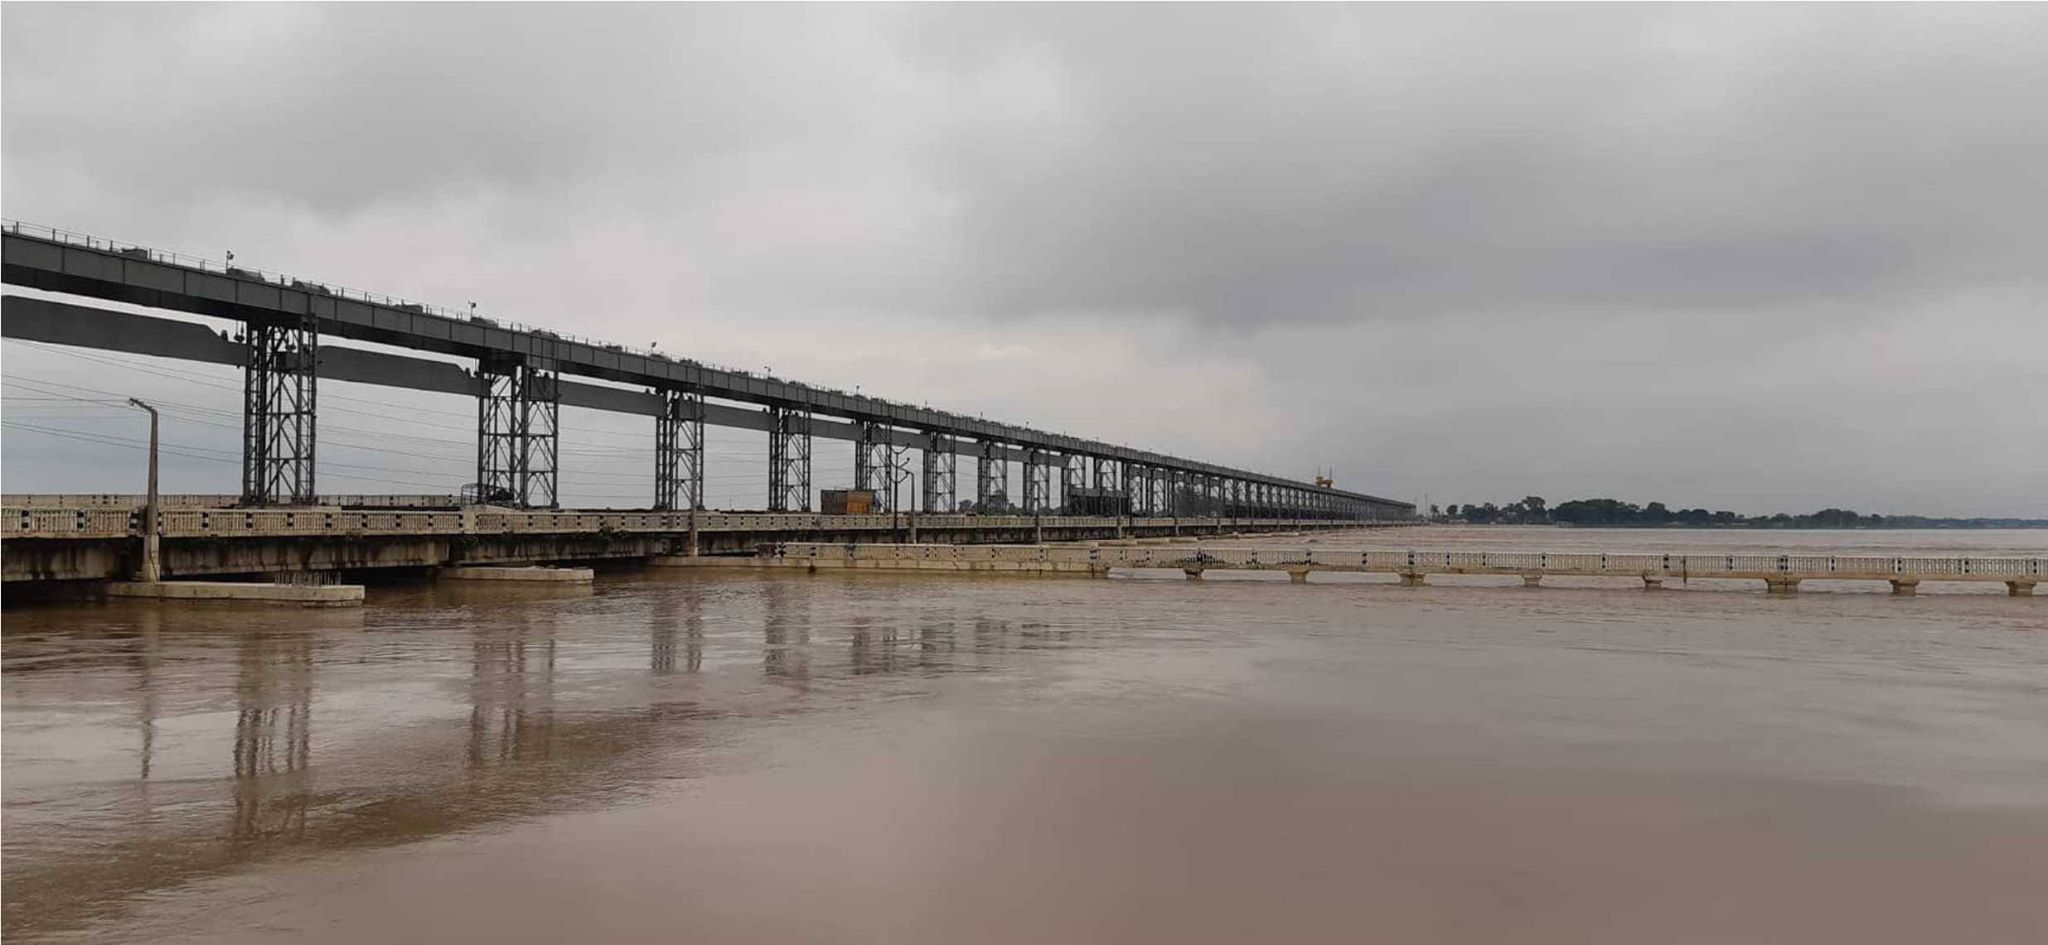 Provincial ministers inspect Koshi Barrage as water level recedes